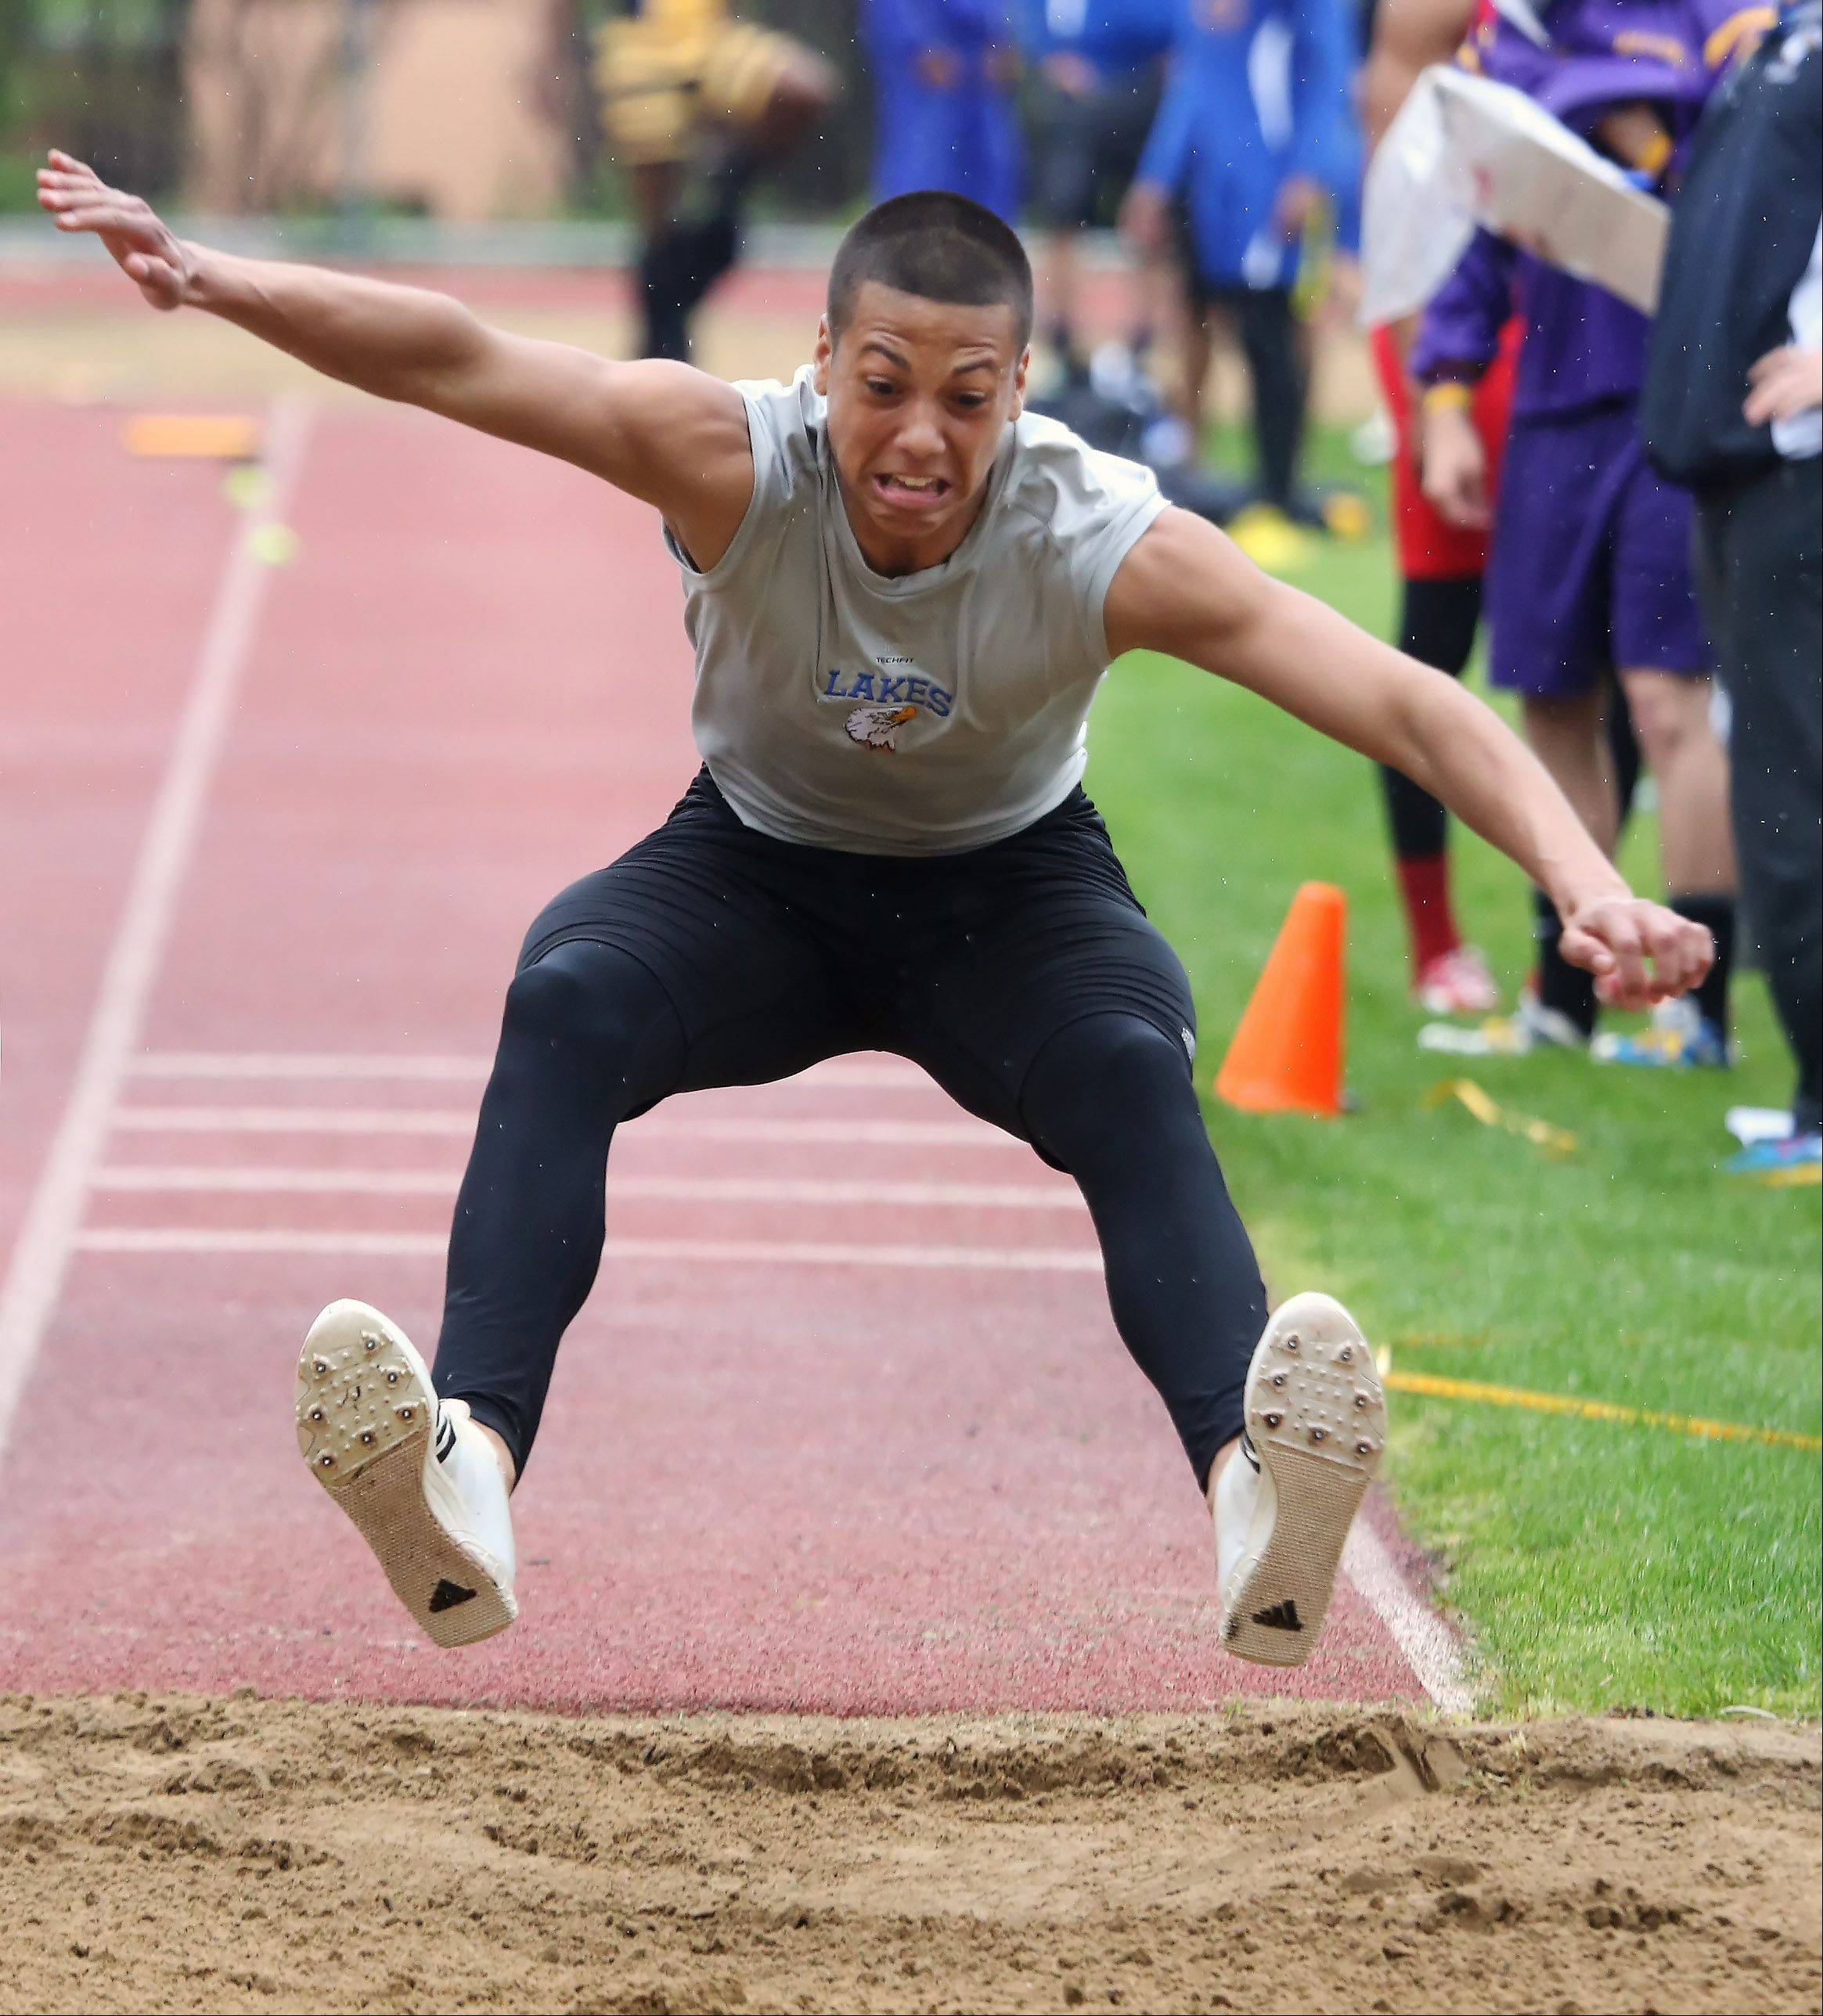 Lakes' Caleb Arnwine competes in the triple jump during the North Suburban Conference boys track meet Thursday in Libertyville.